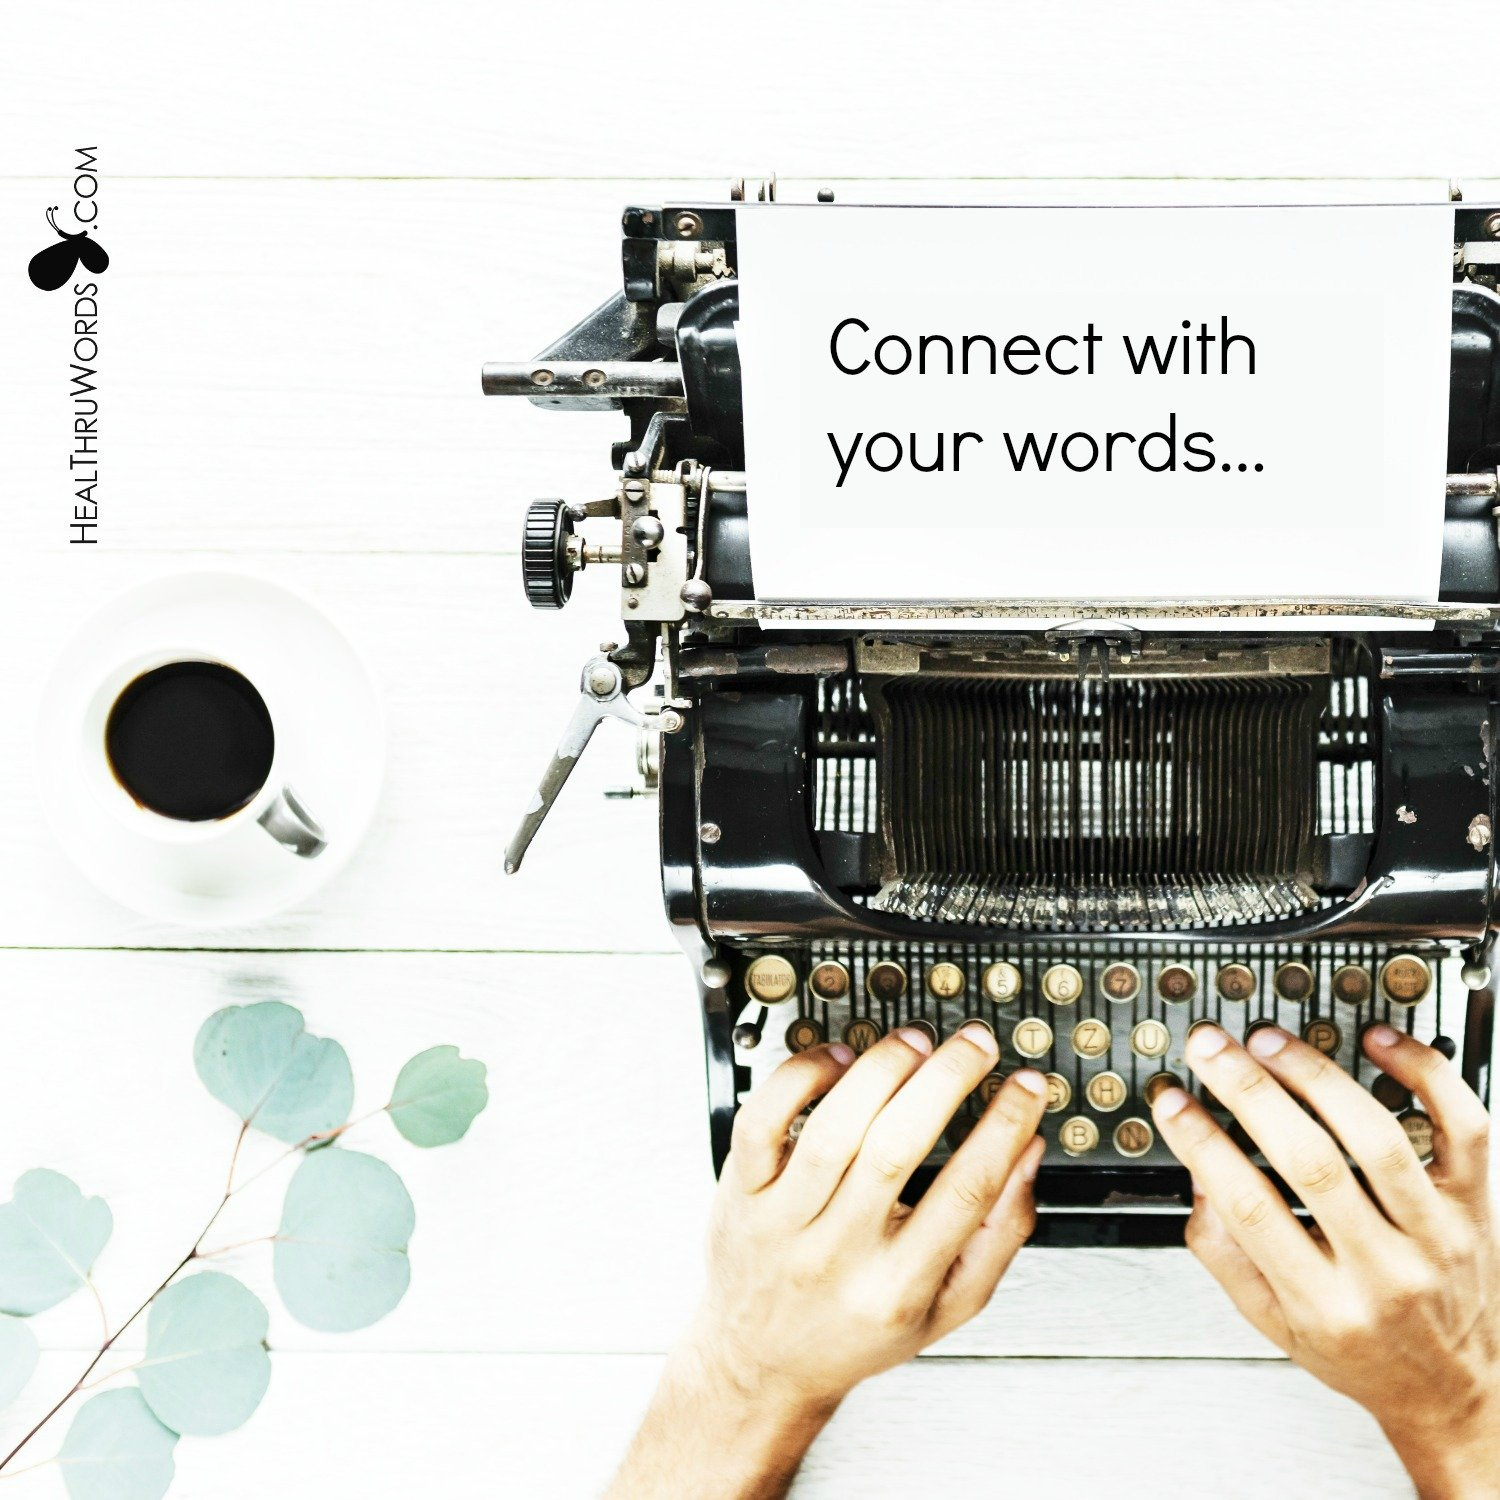 Inspirational Image: You And Your Words